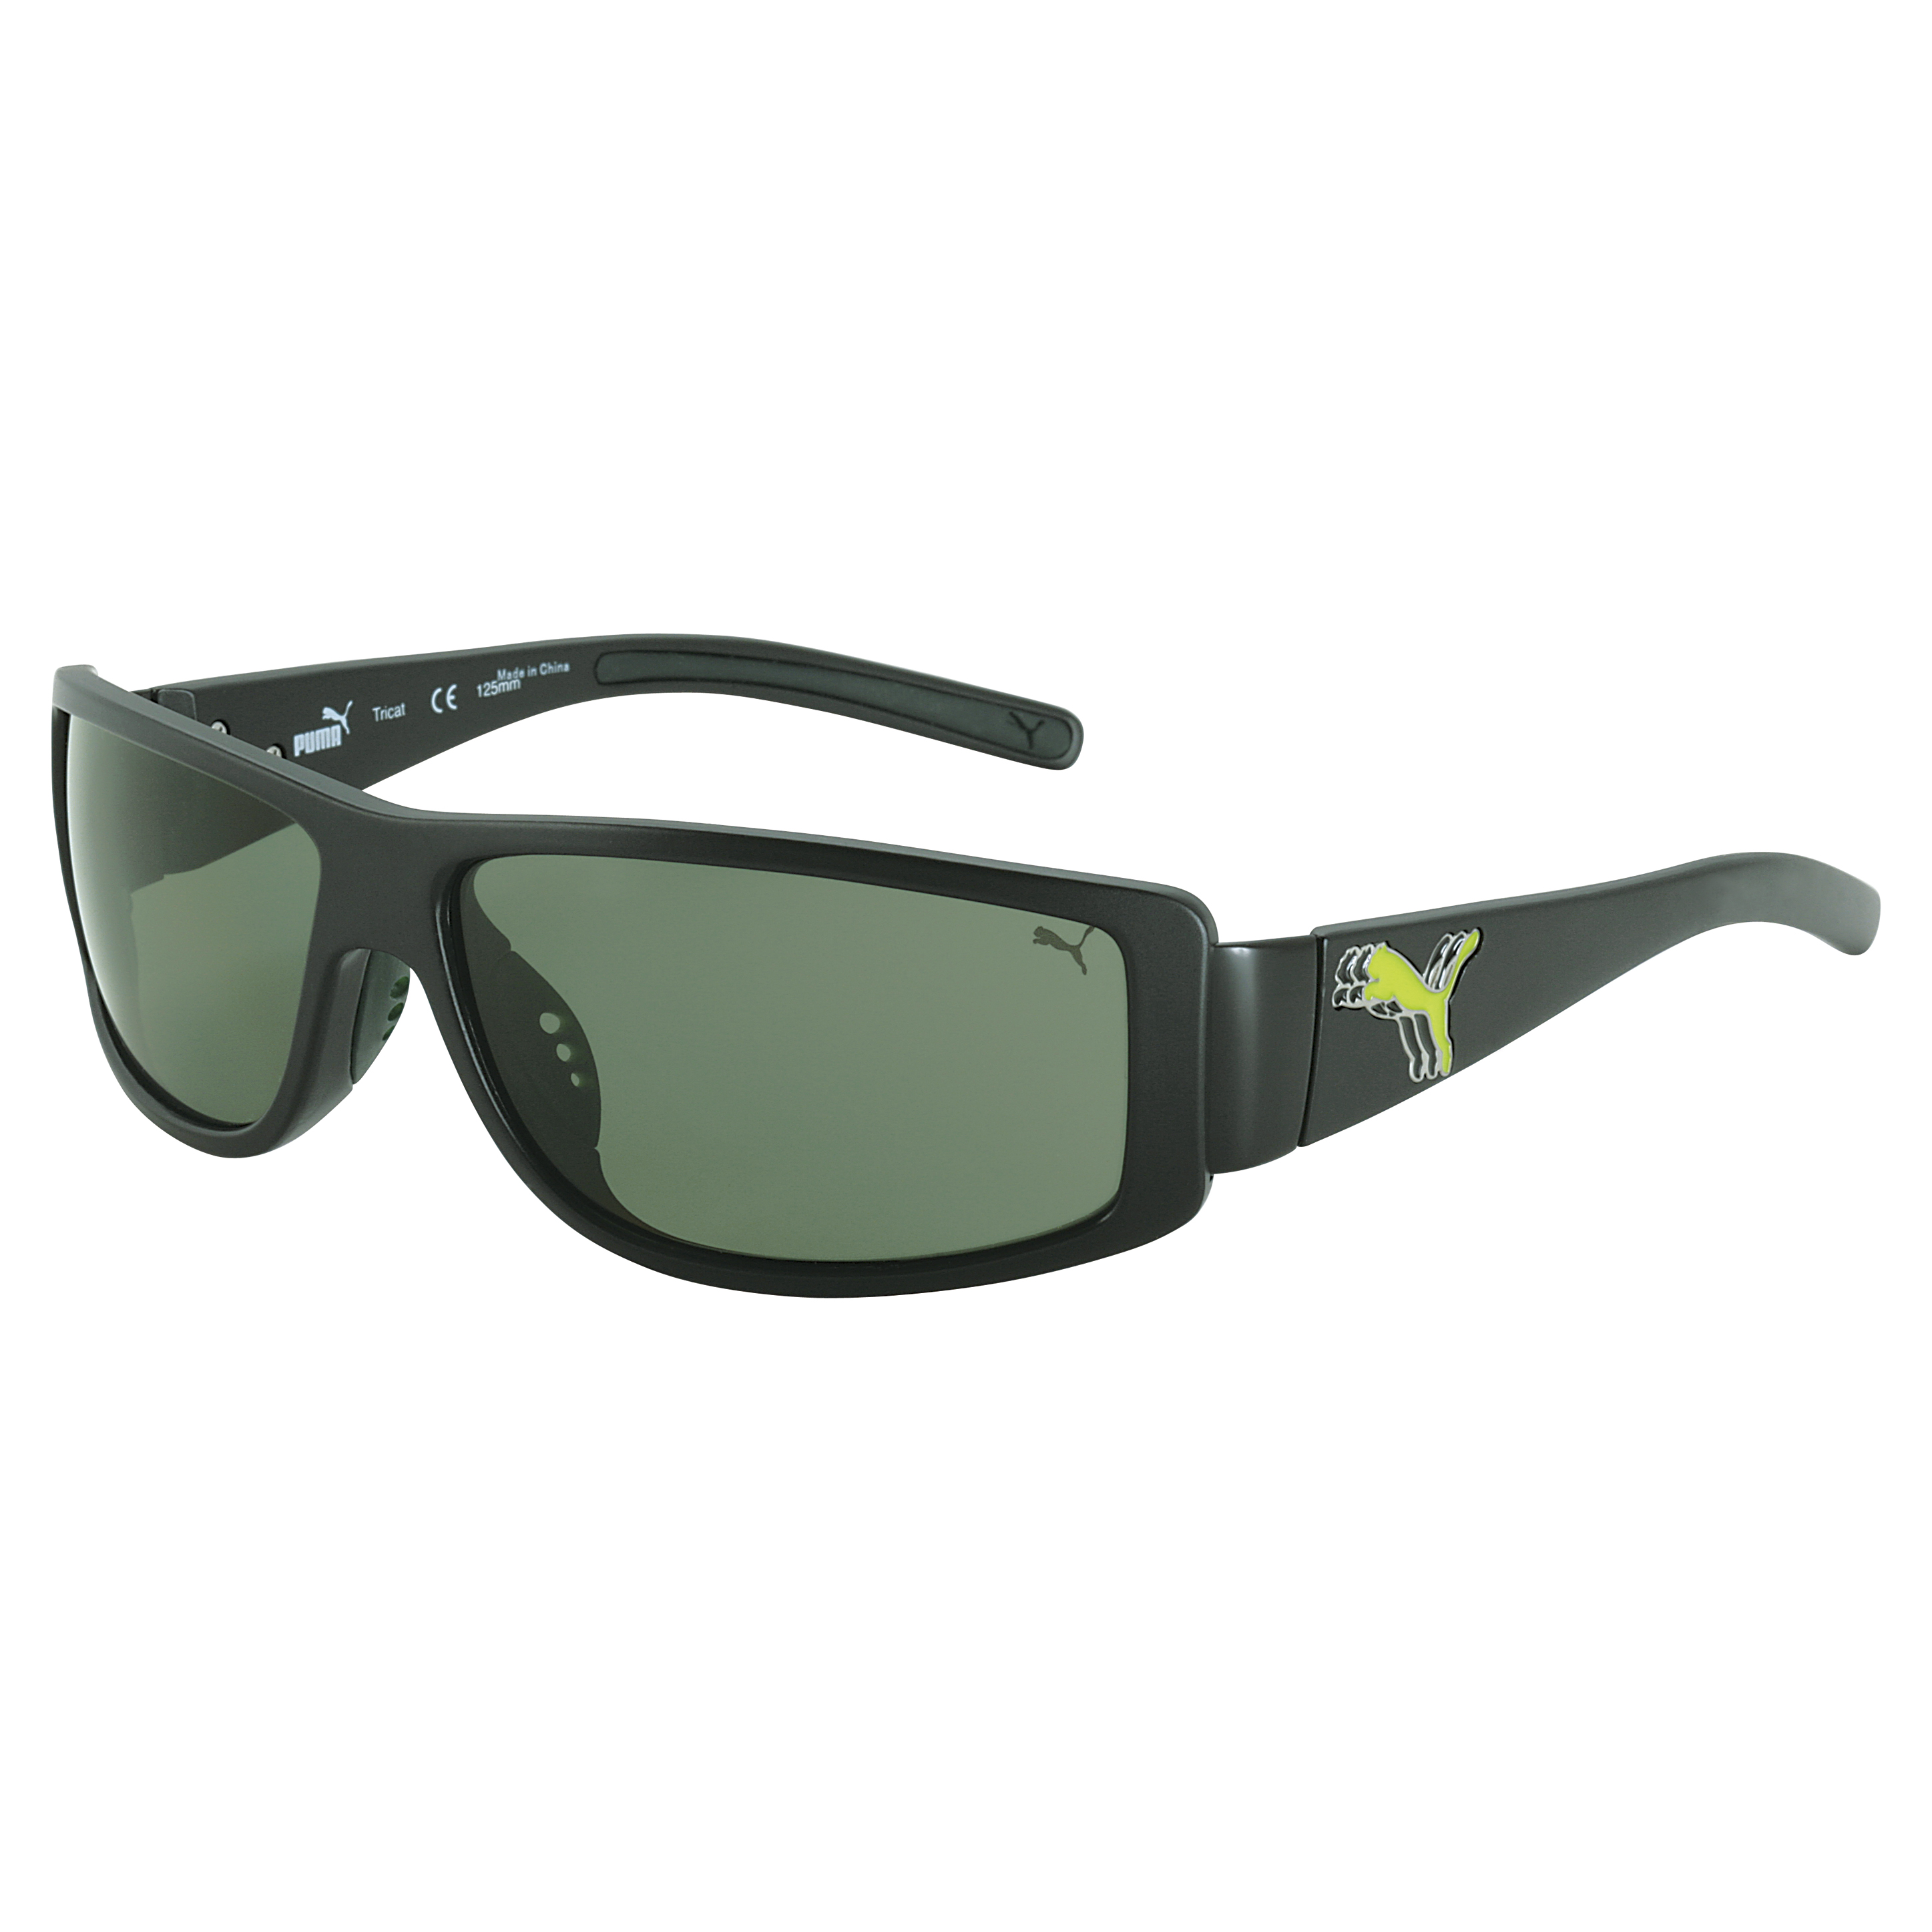 Puma Tricat Sunglasses - Black